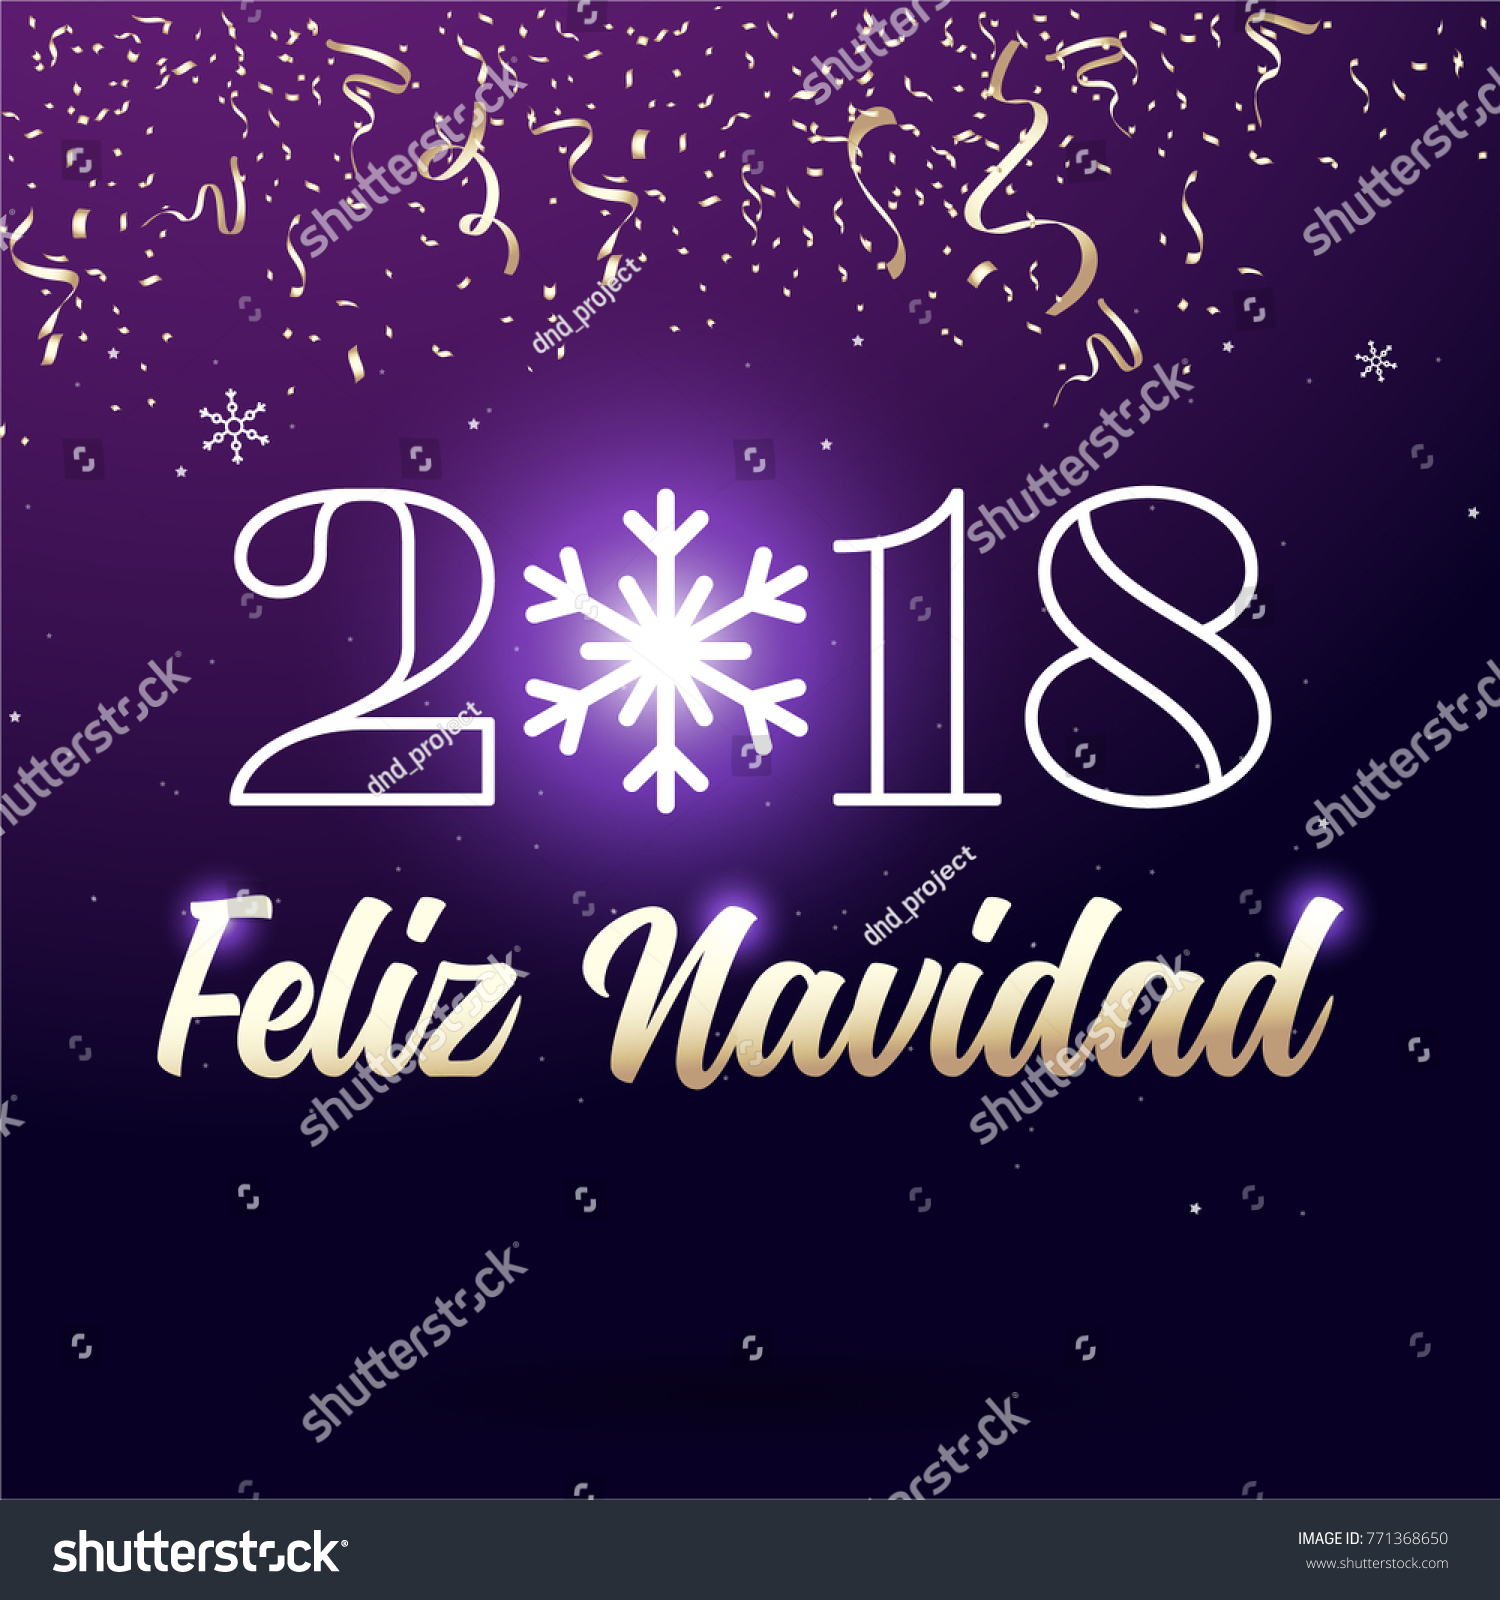 happy new year badge spanish feliz navidad with lettering ribbon type and snowflakes